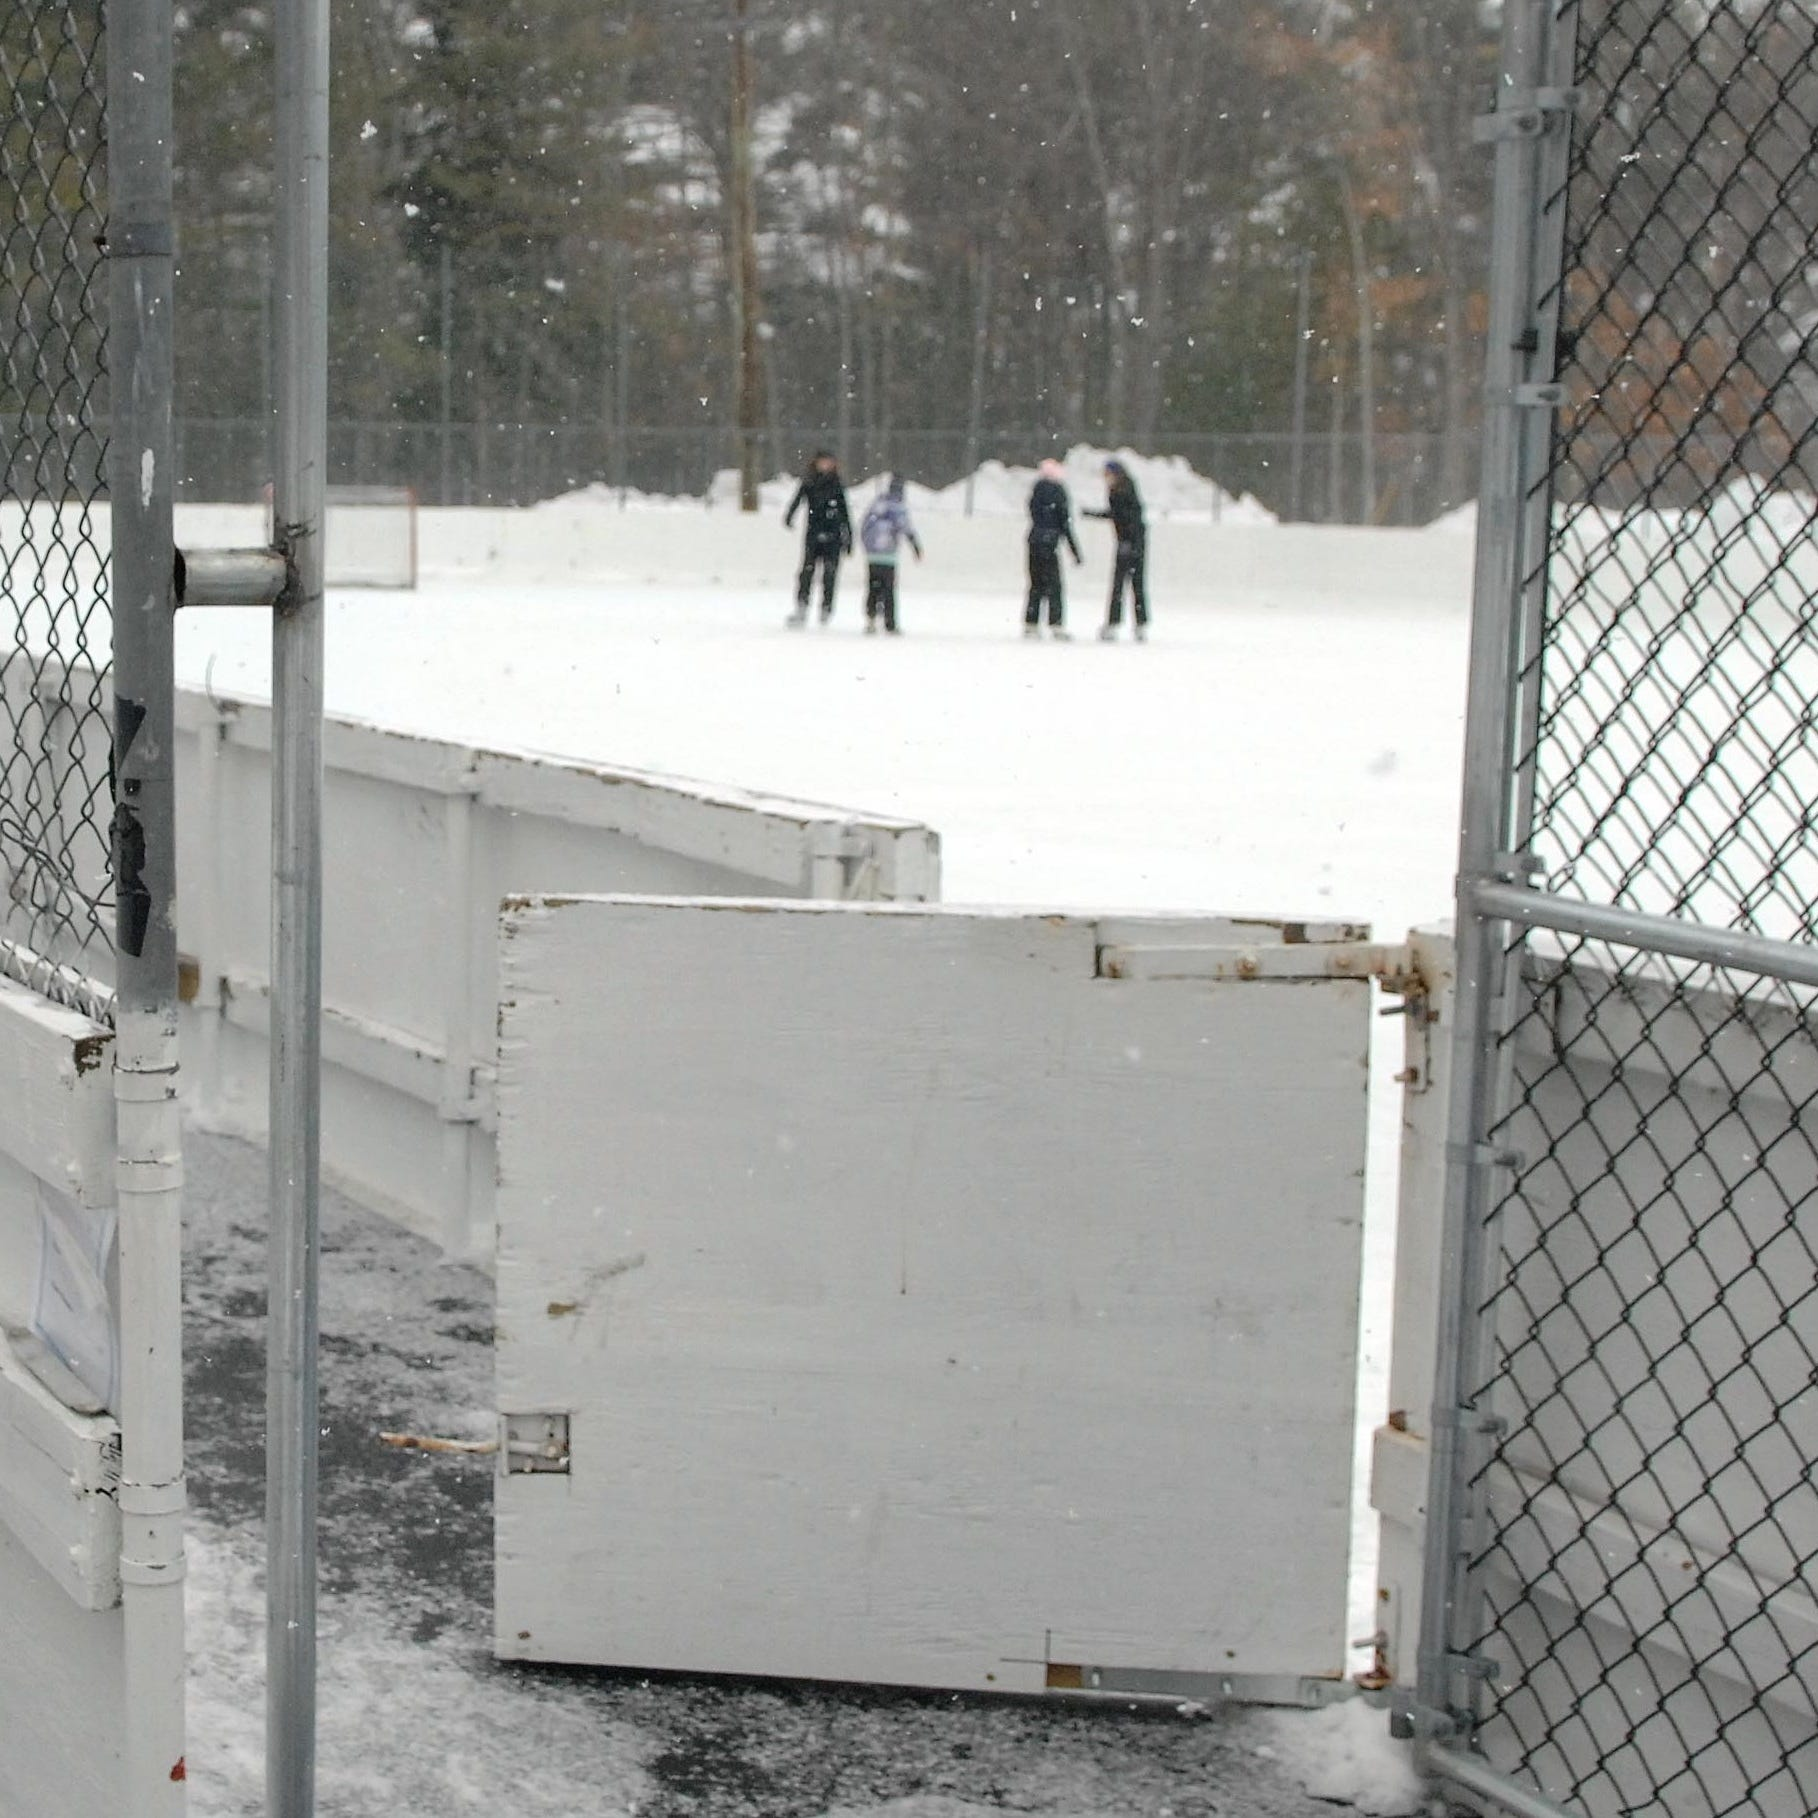 Ringwood ice rink wrecked by trespassers will be closed for season